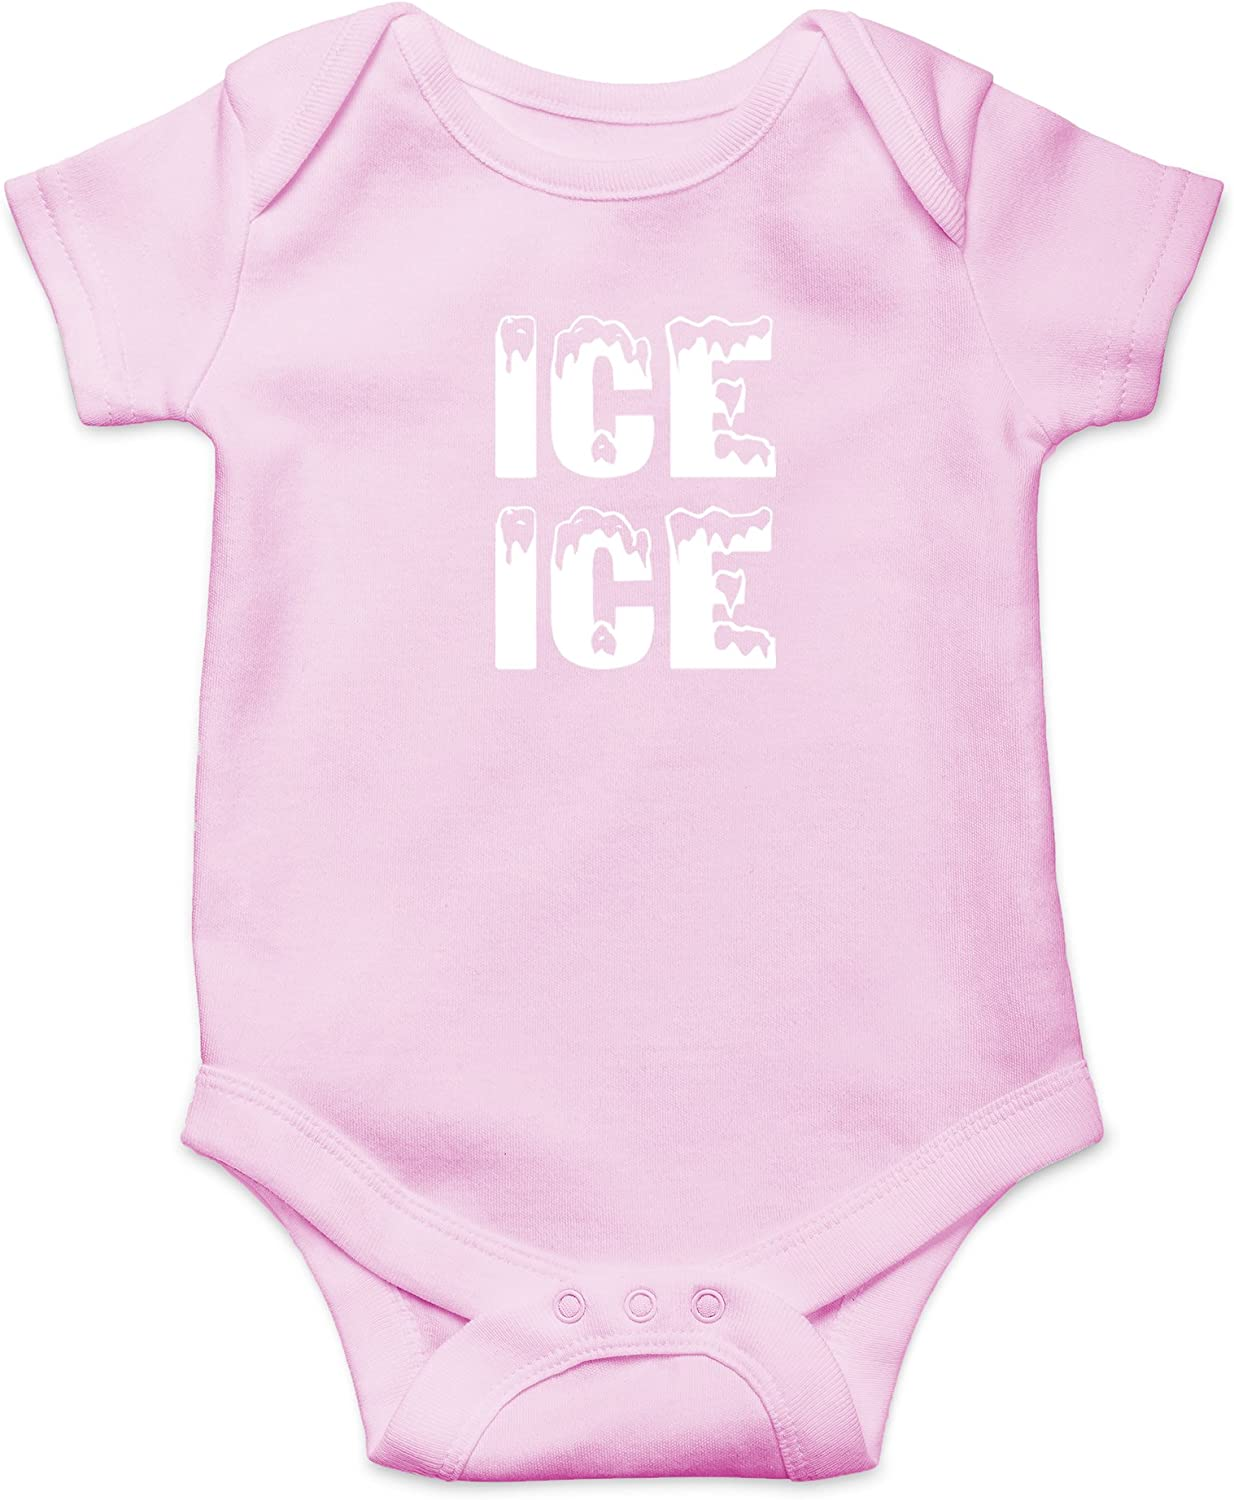 Crazy Bros Tees Ice Ice Baby - Parody Funny Cute Novelty Infant One-Piece Baby Bodysuit